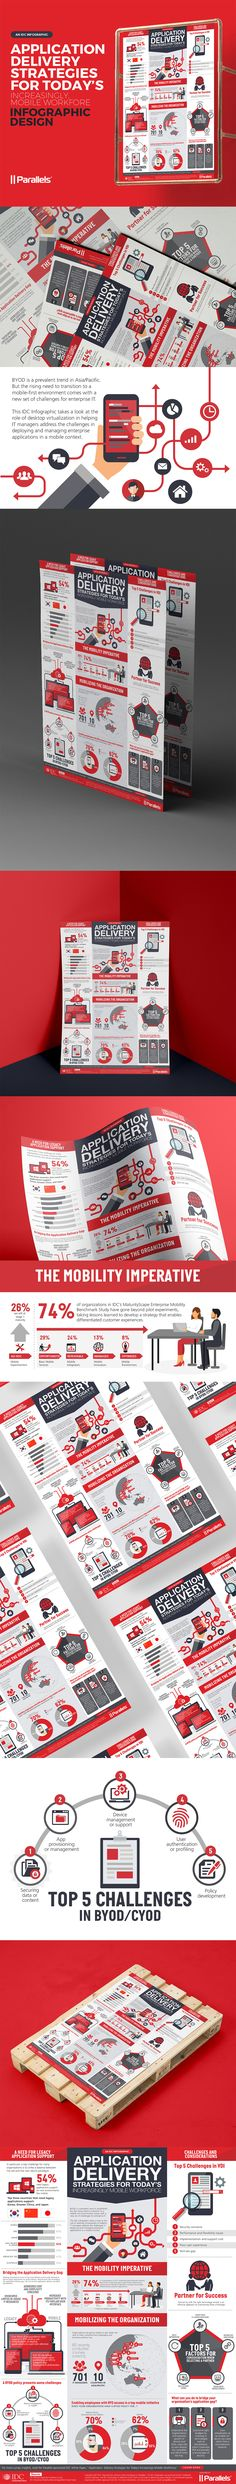 Pin By Get Fareye On Mobile Workforce Management